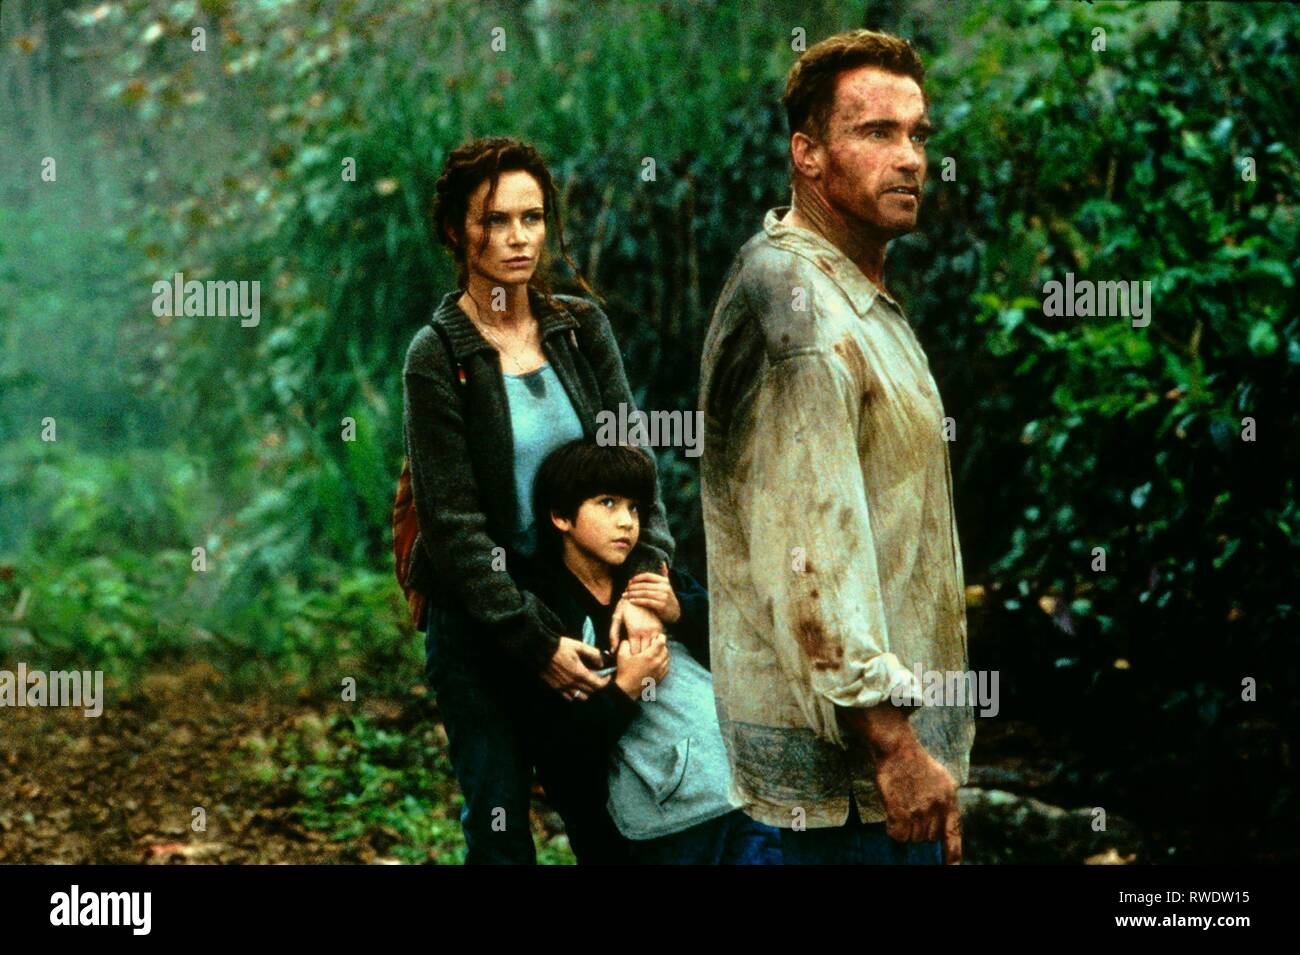 NERI,POSEY,SCHWARZENEGGER, COLLATERAL DAMAGE, 2002 - Stock Image